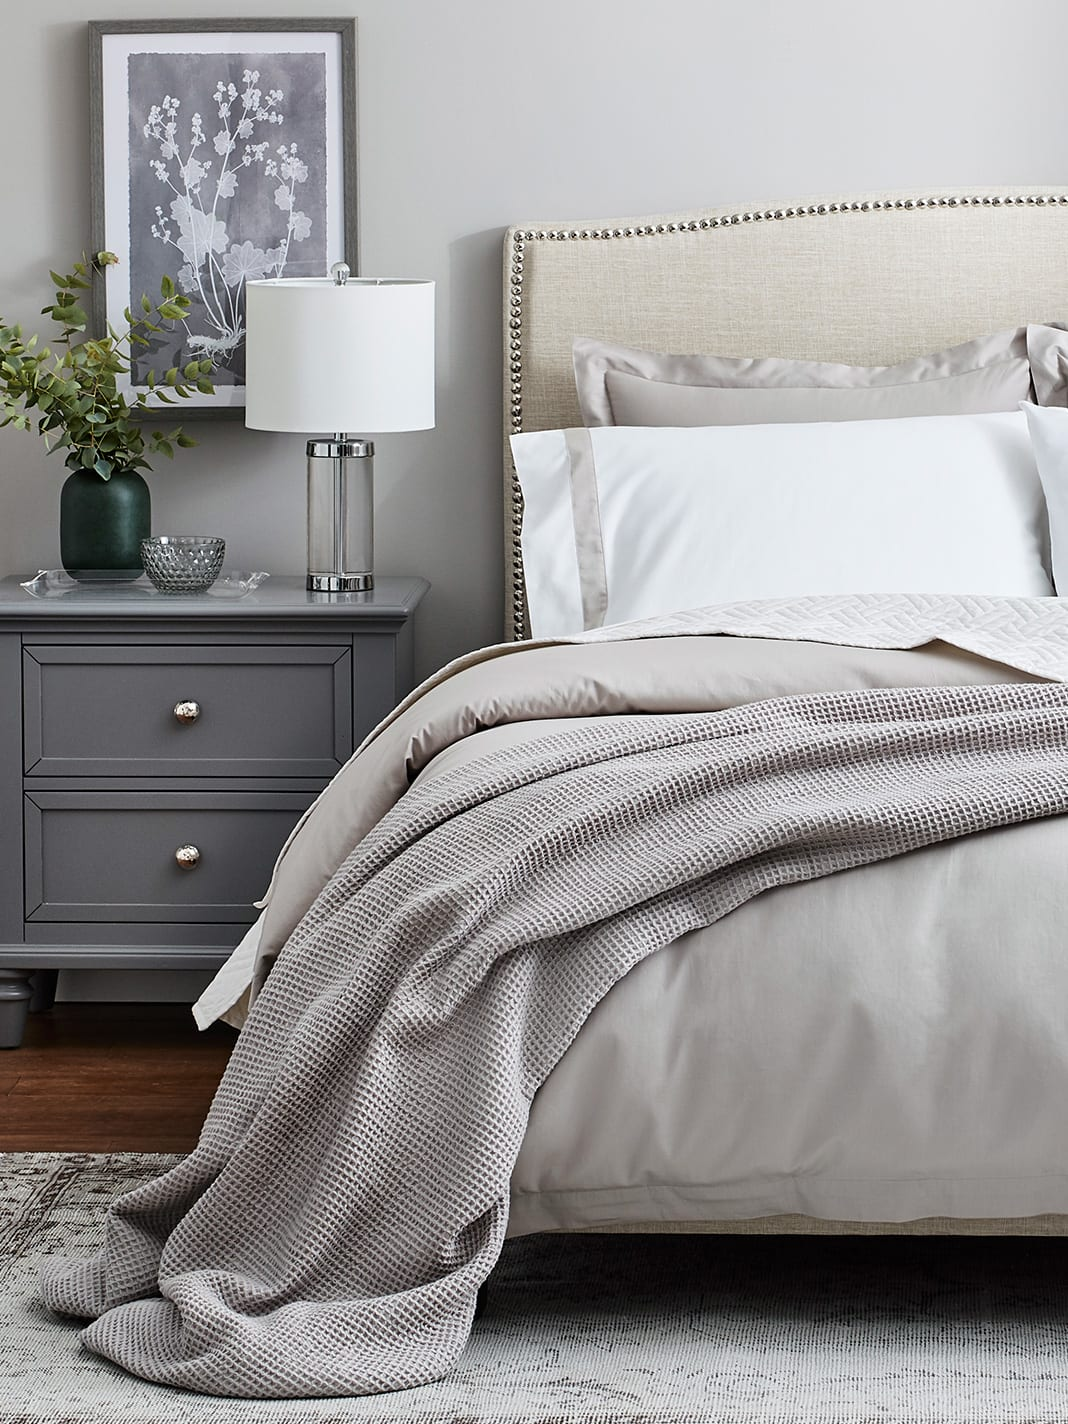 Waffle bed blanket by Boll & Branch in the color pewter.